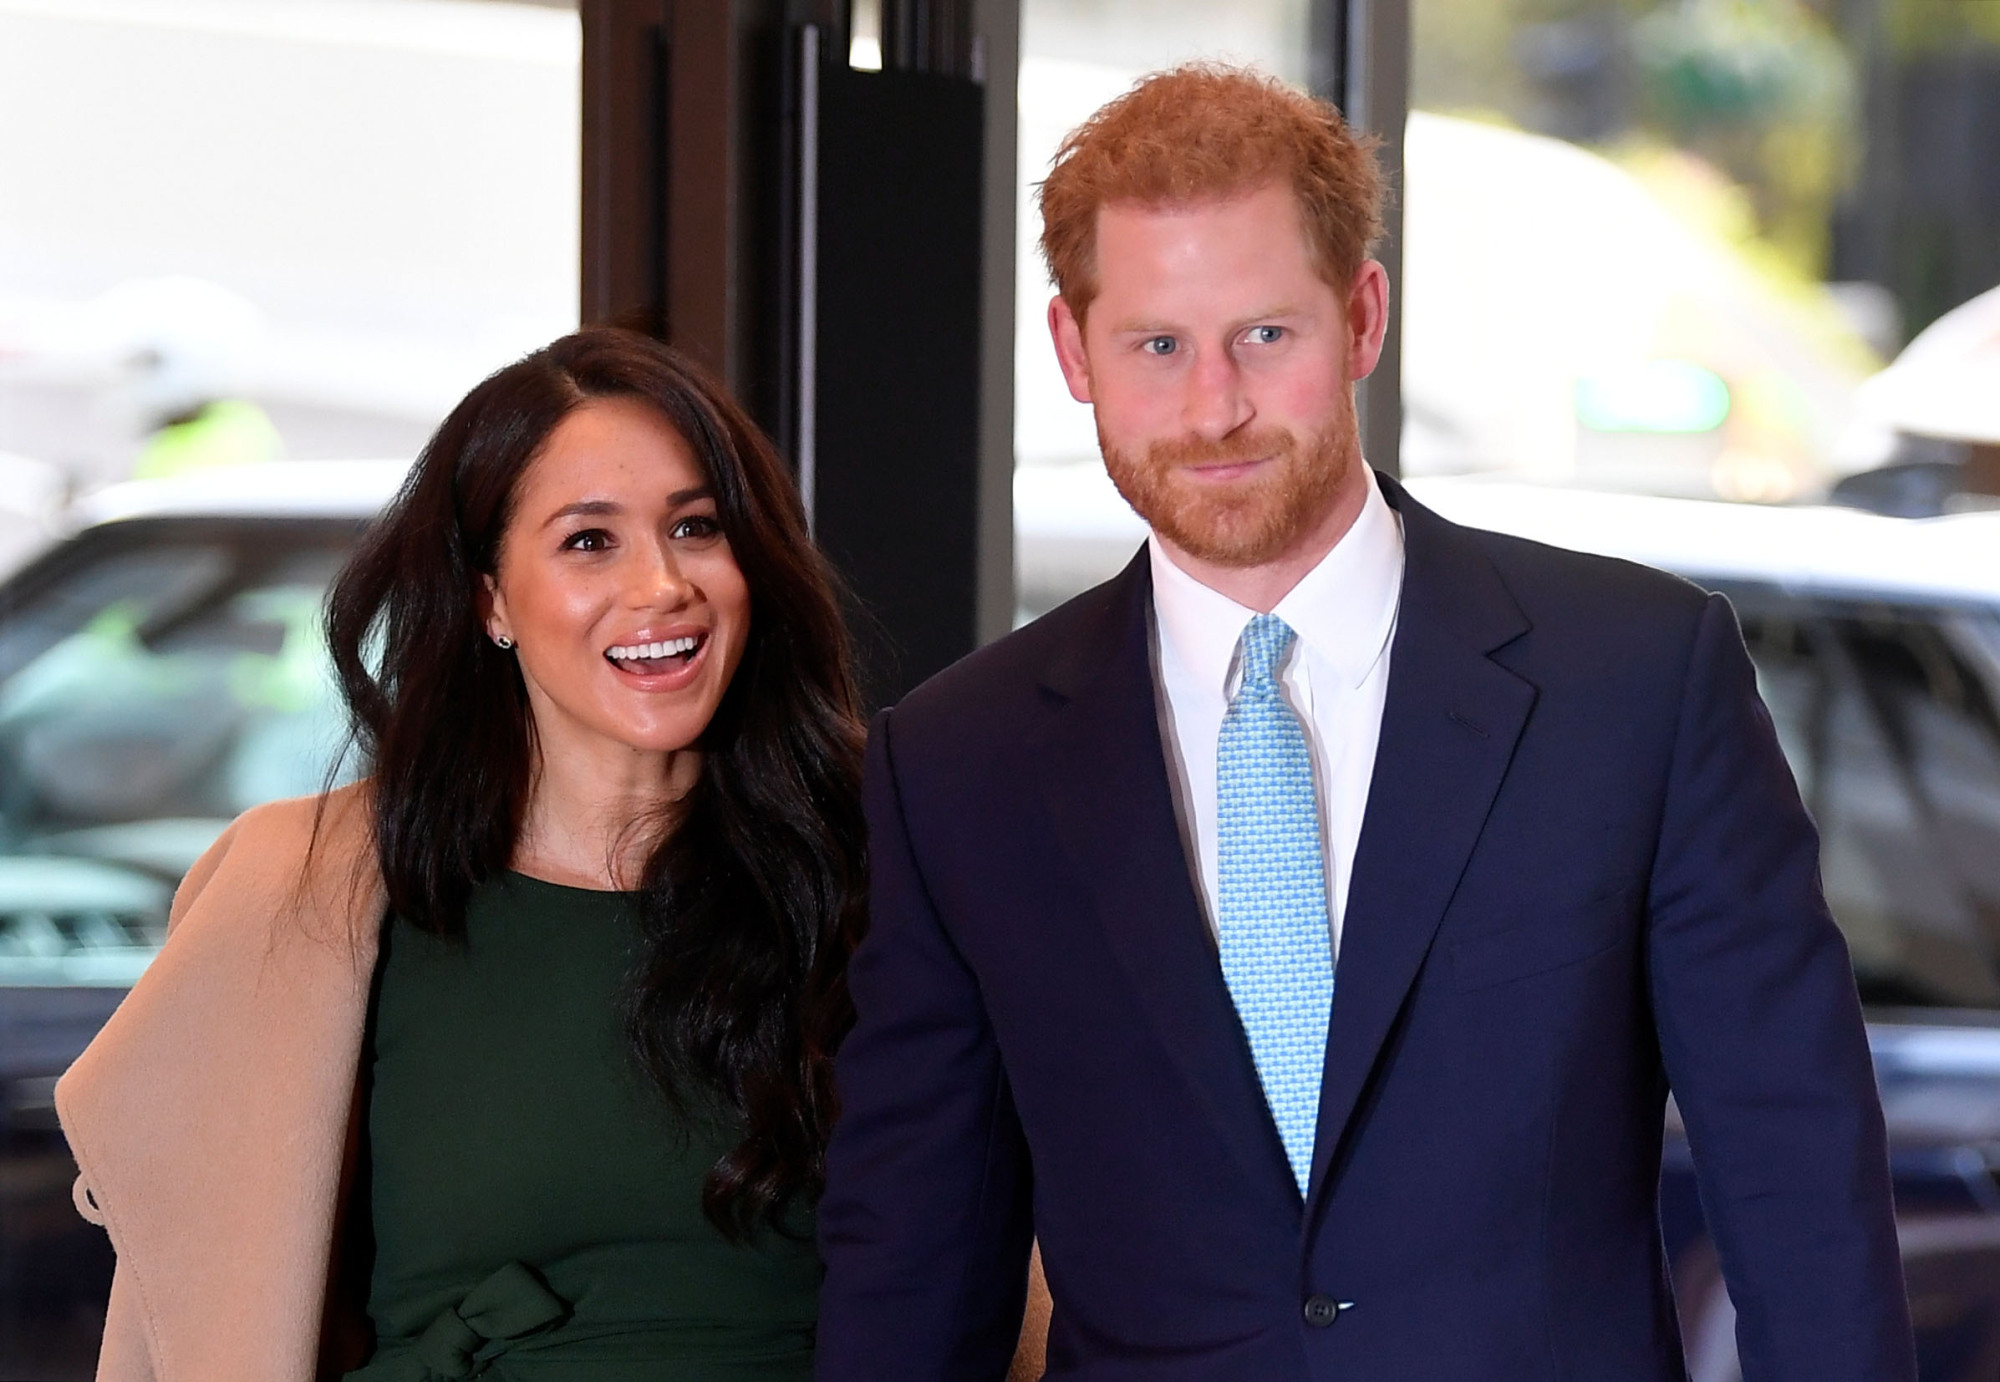 A lawsuit launched by the Duke and Dutchess of Sussex against a British newspaper raises  serious issues about press freedom. | REUTERS